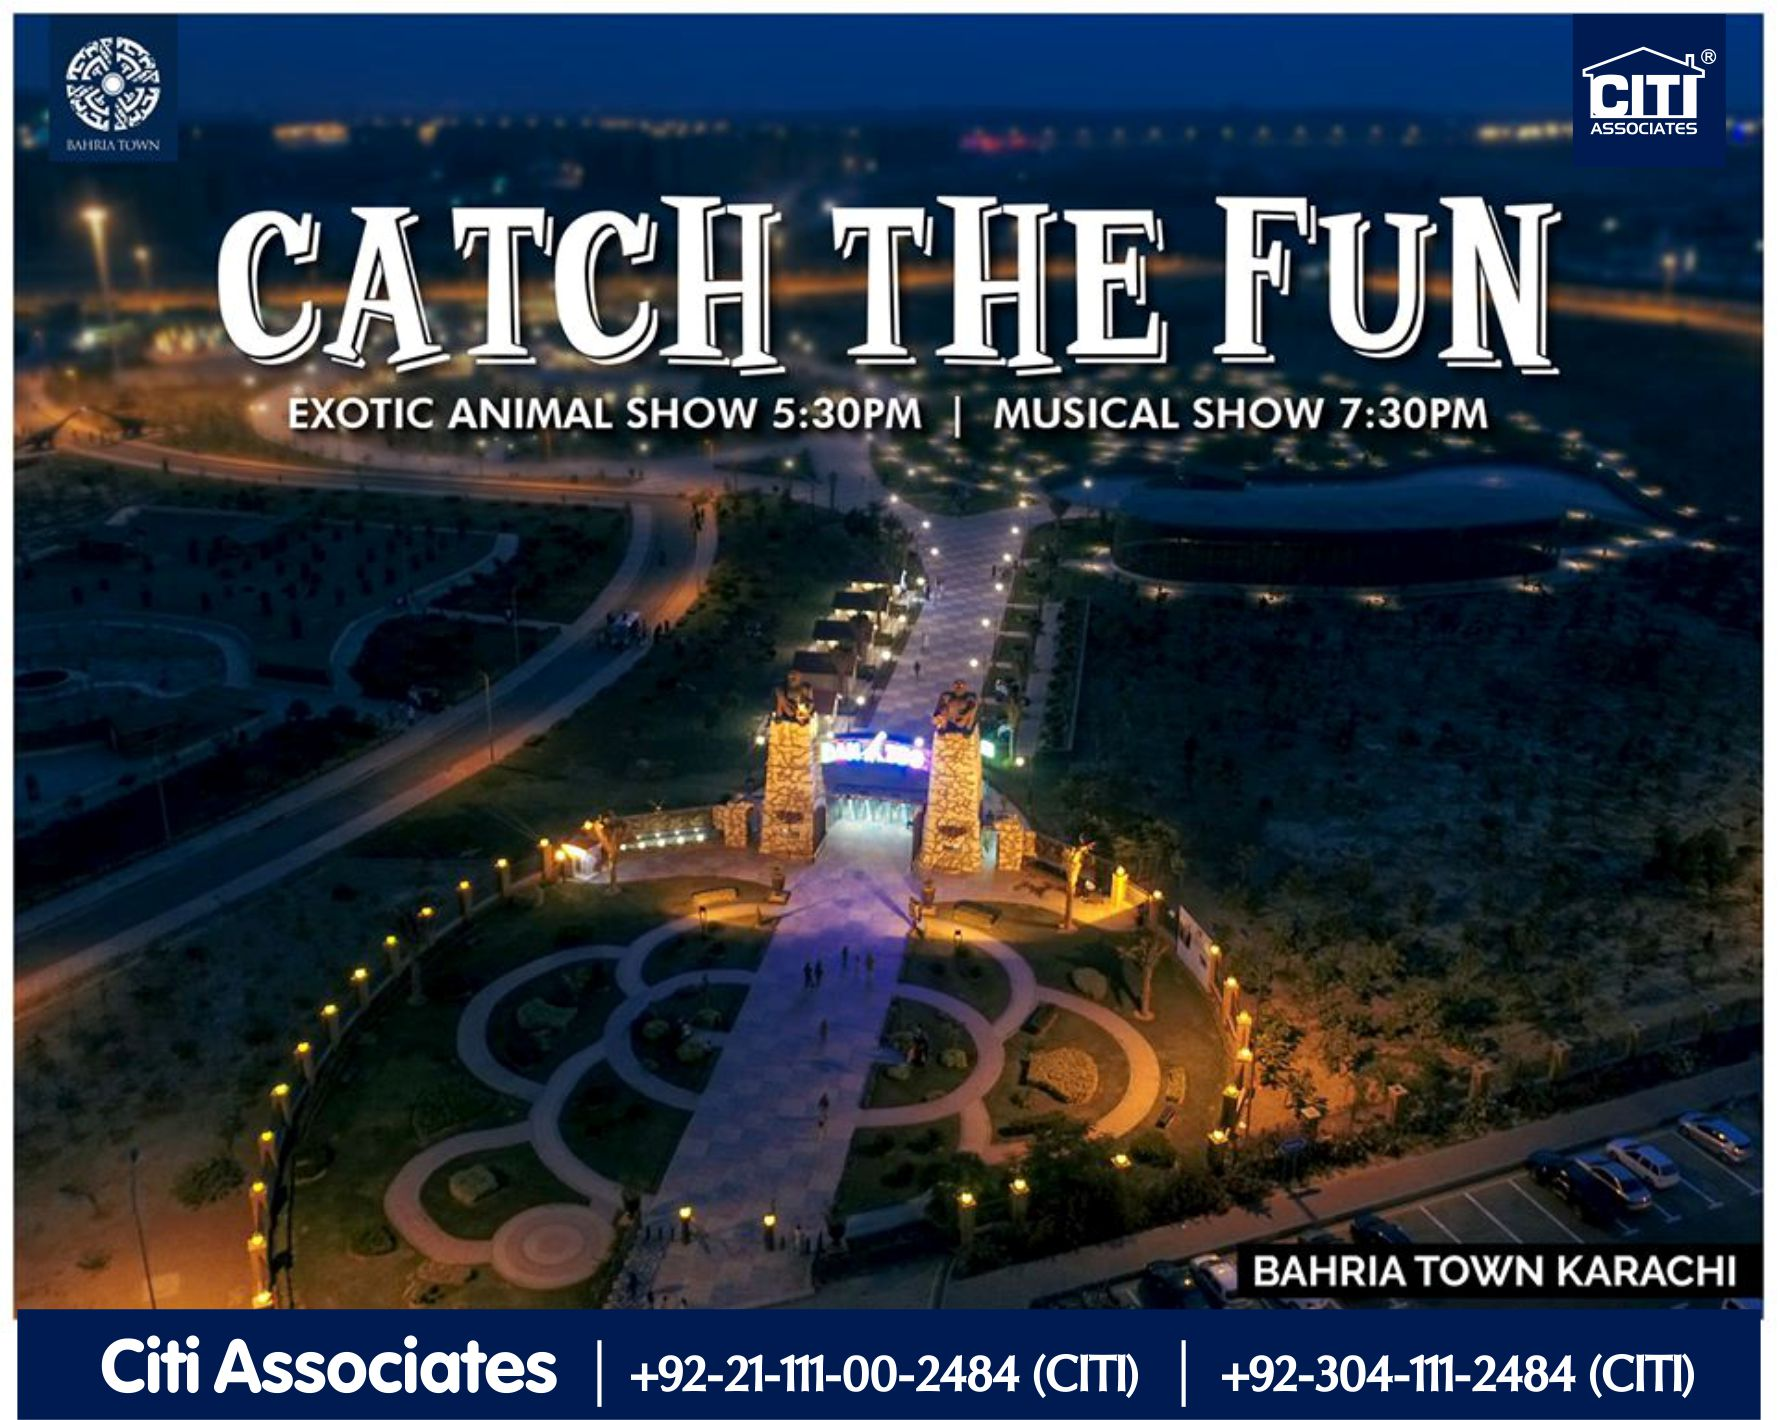 Catch the Fun | Exotic Animal & Musical Show | Bahria Town Karachi